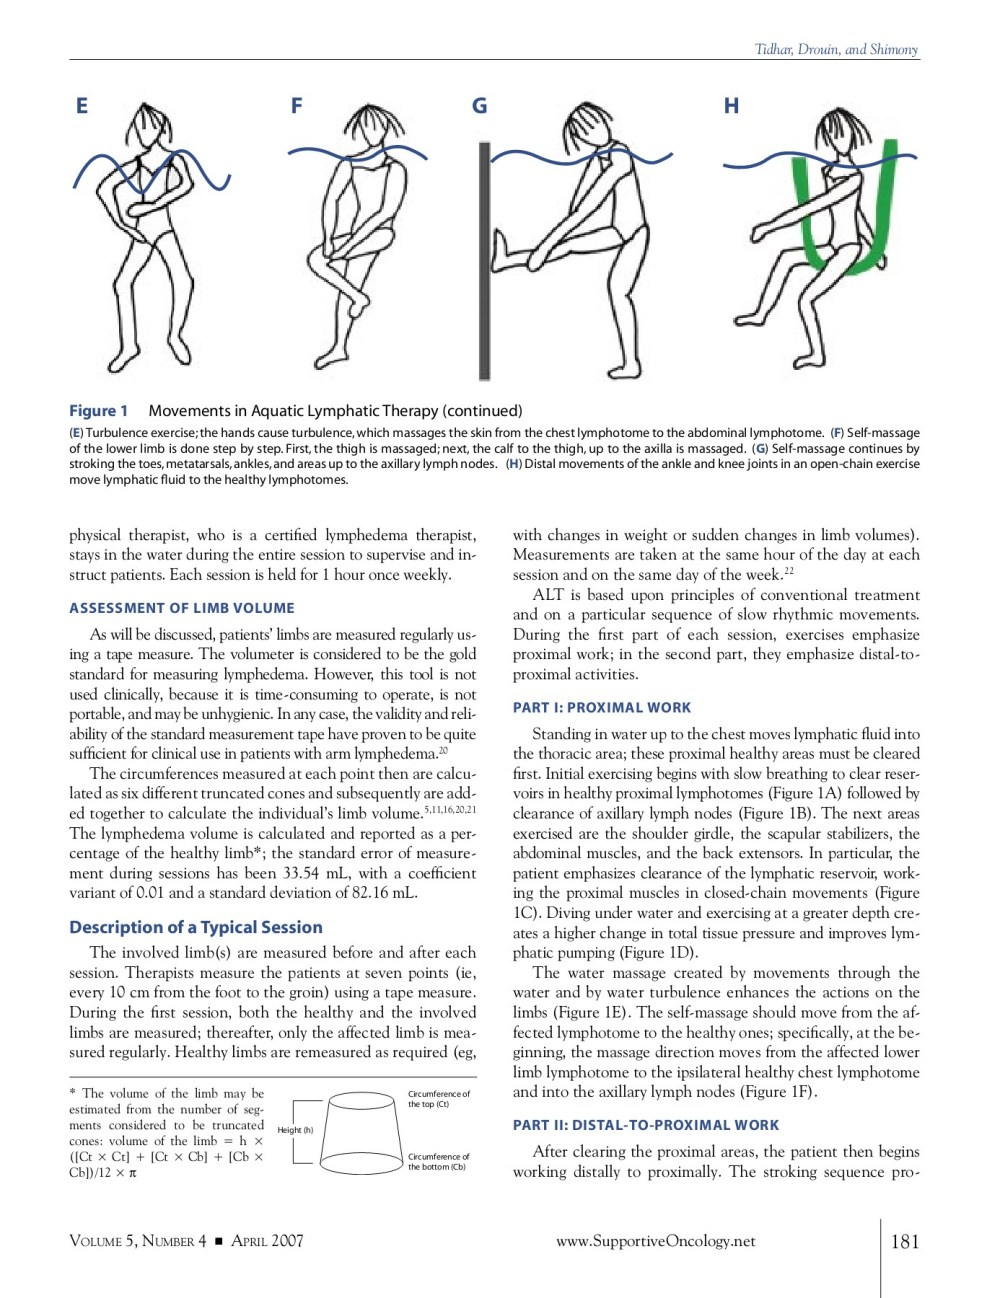 medium resolution of aqua lymphatic therapy in managing lower extremity lymphedema pages 1 5 text version anyflip